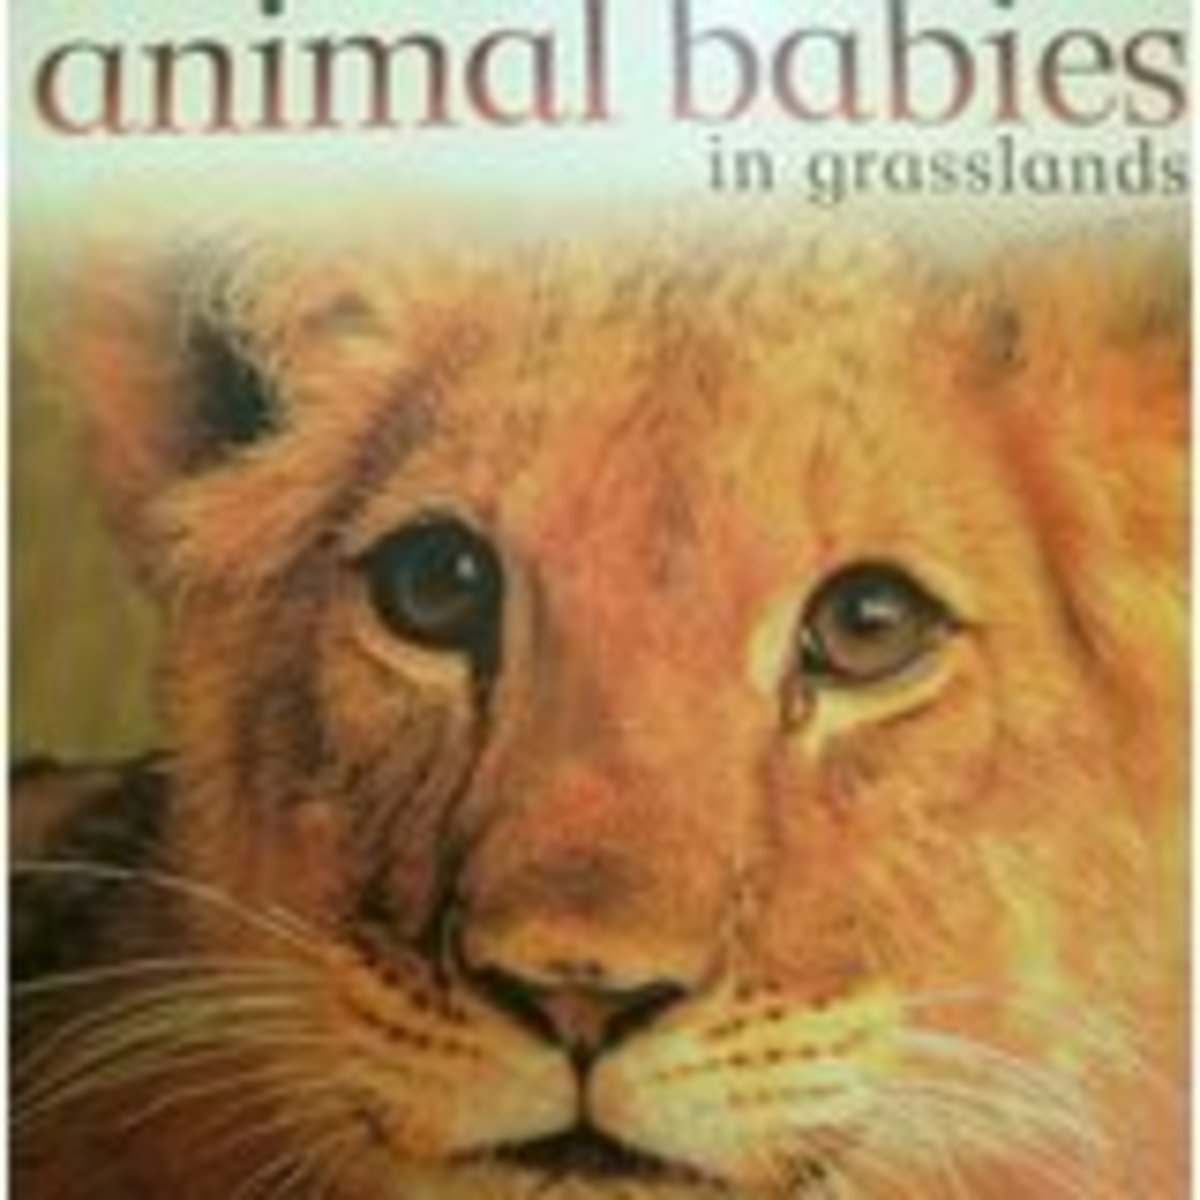 Animal Babies in Grasslands by Jennifer Schofield